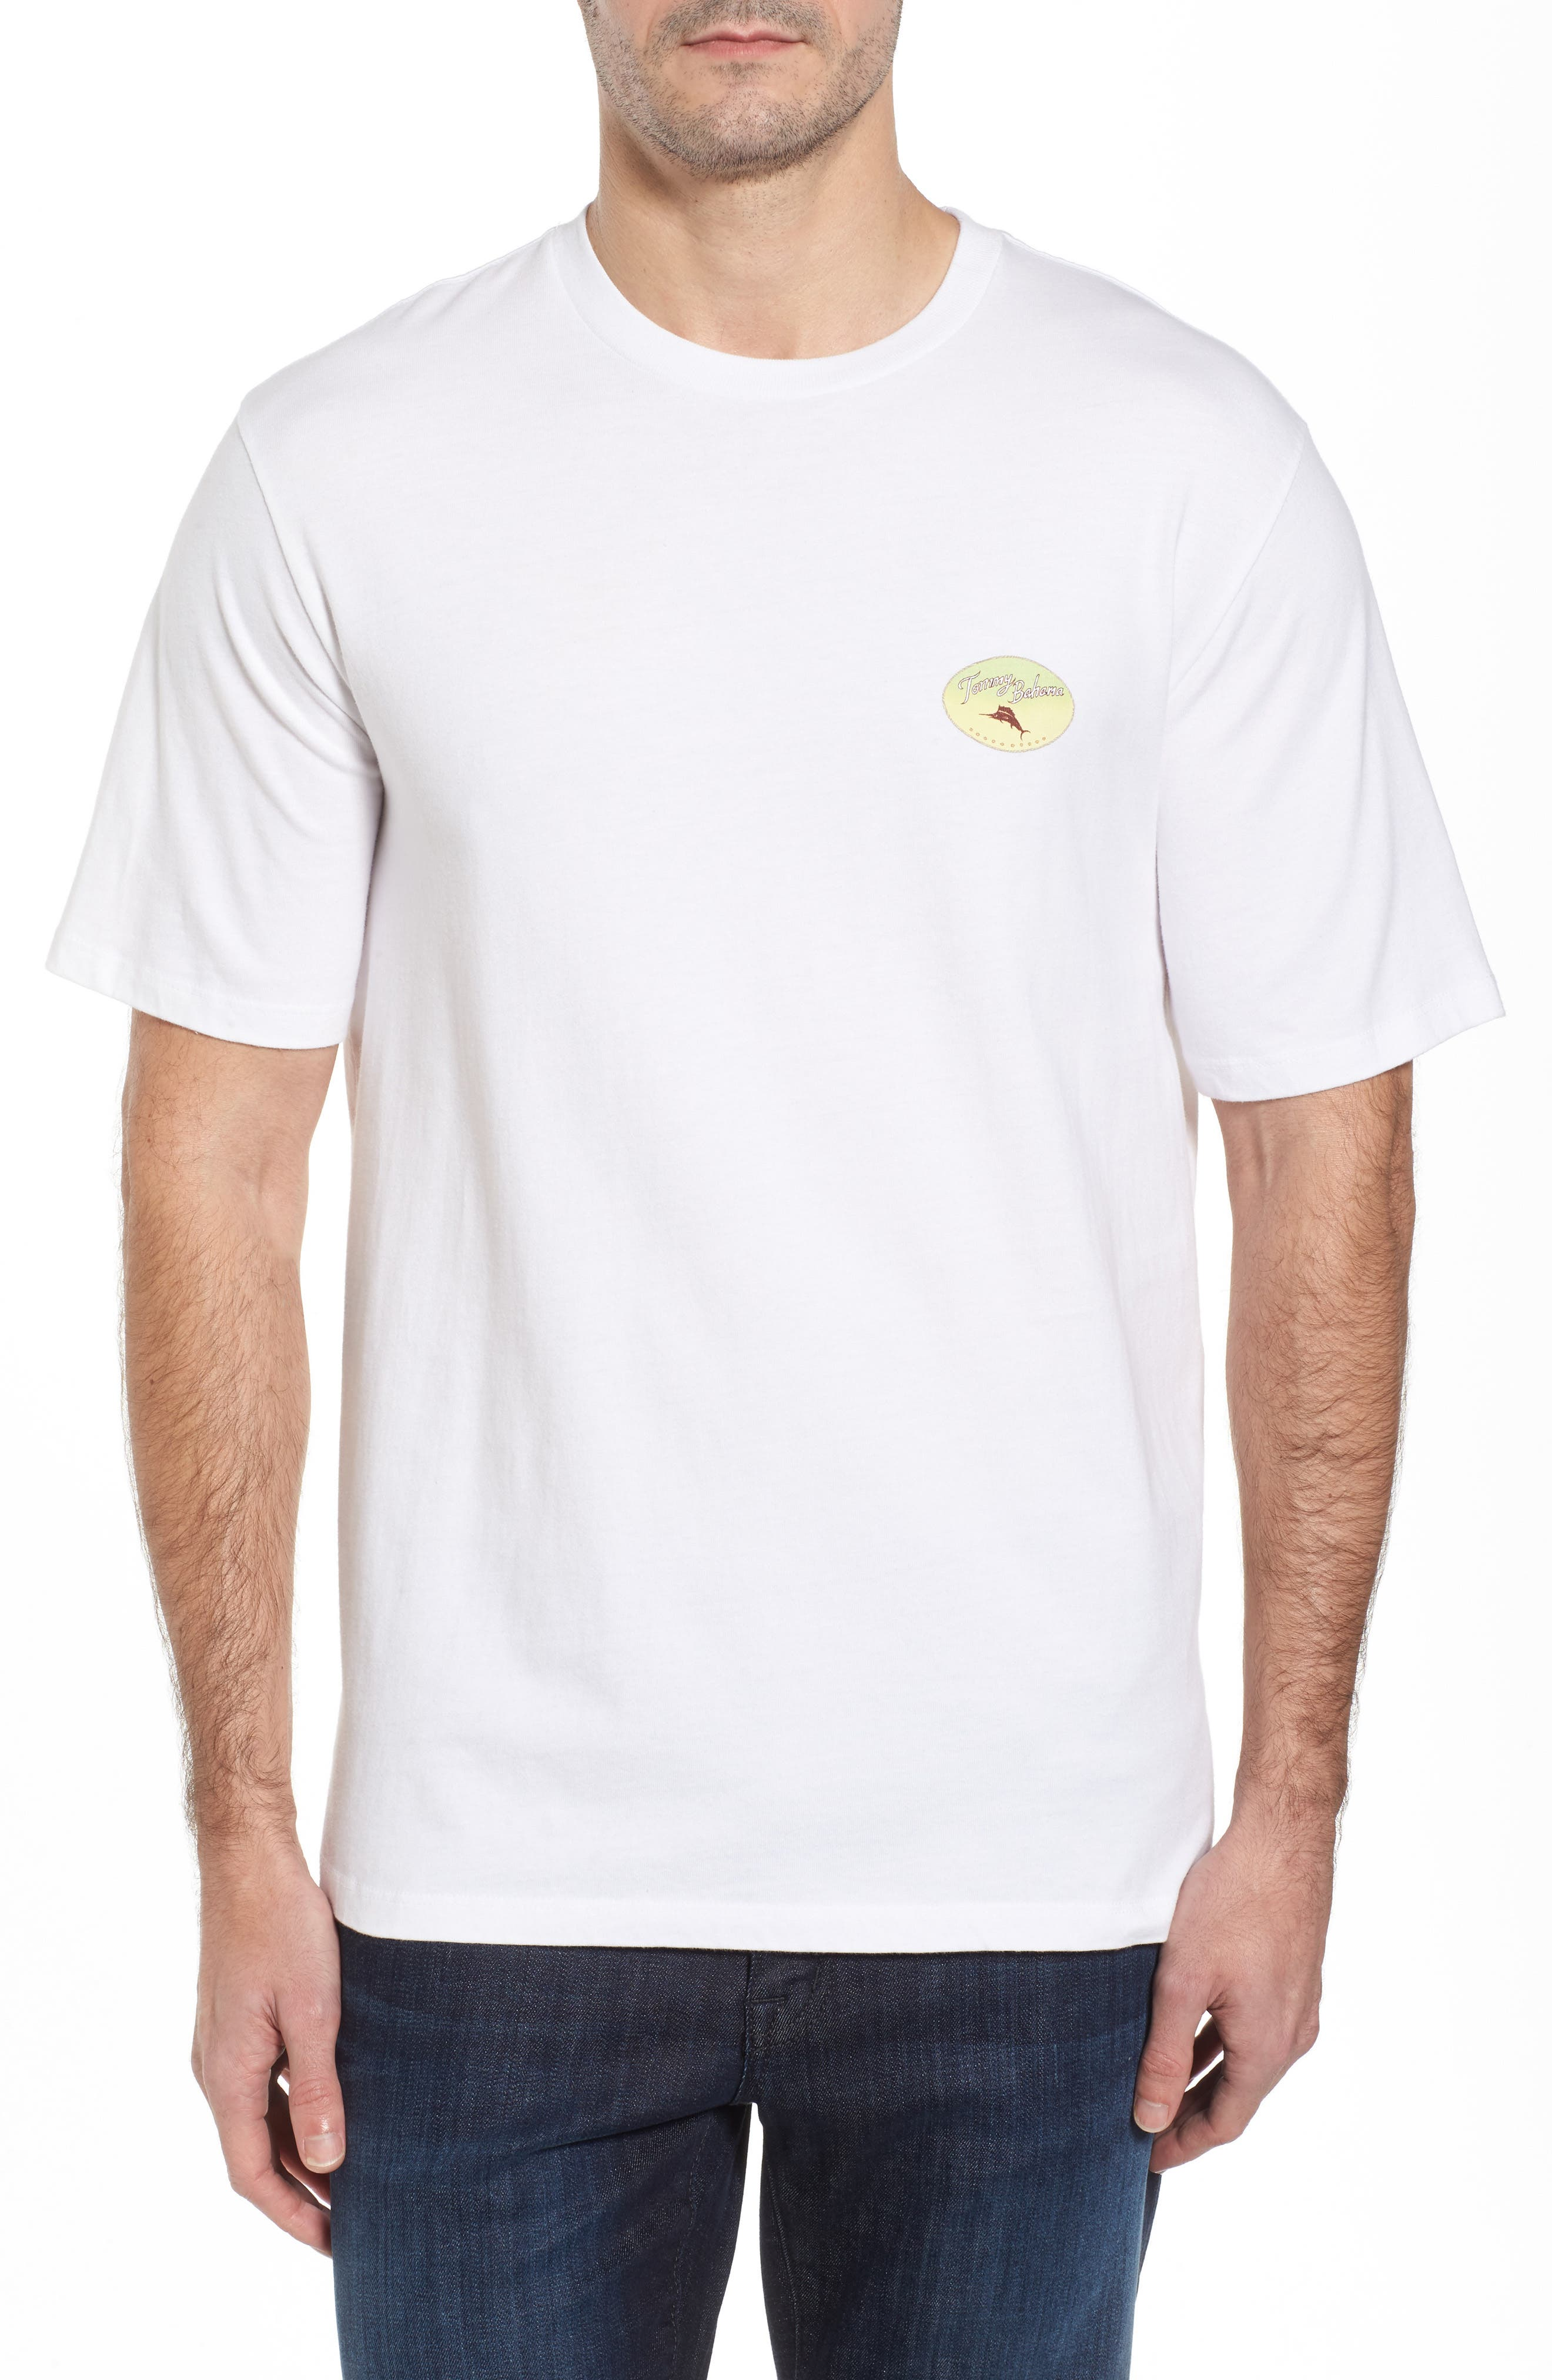 Improve Your Swing T-Shirt,                             Alternate thumbnail 2, color,                             White